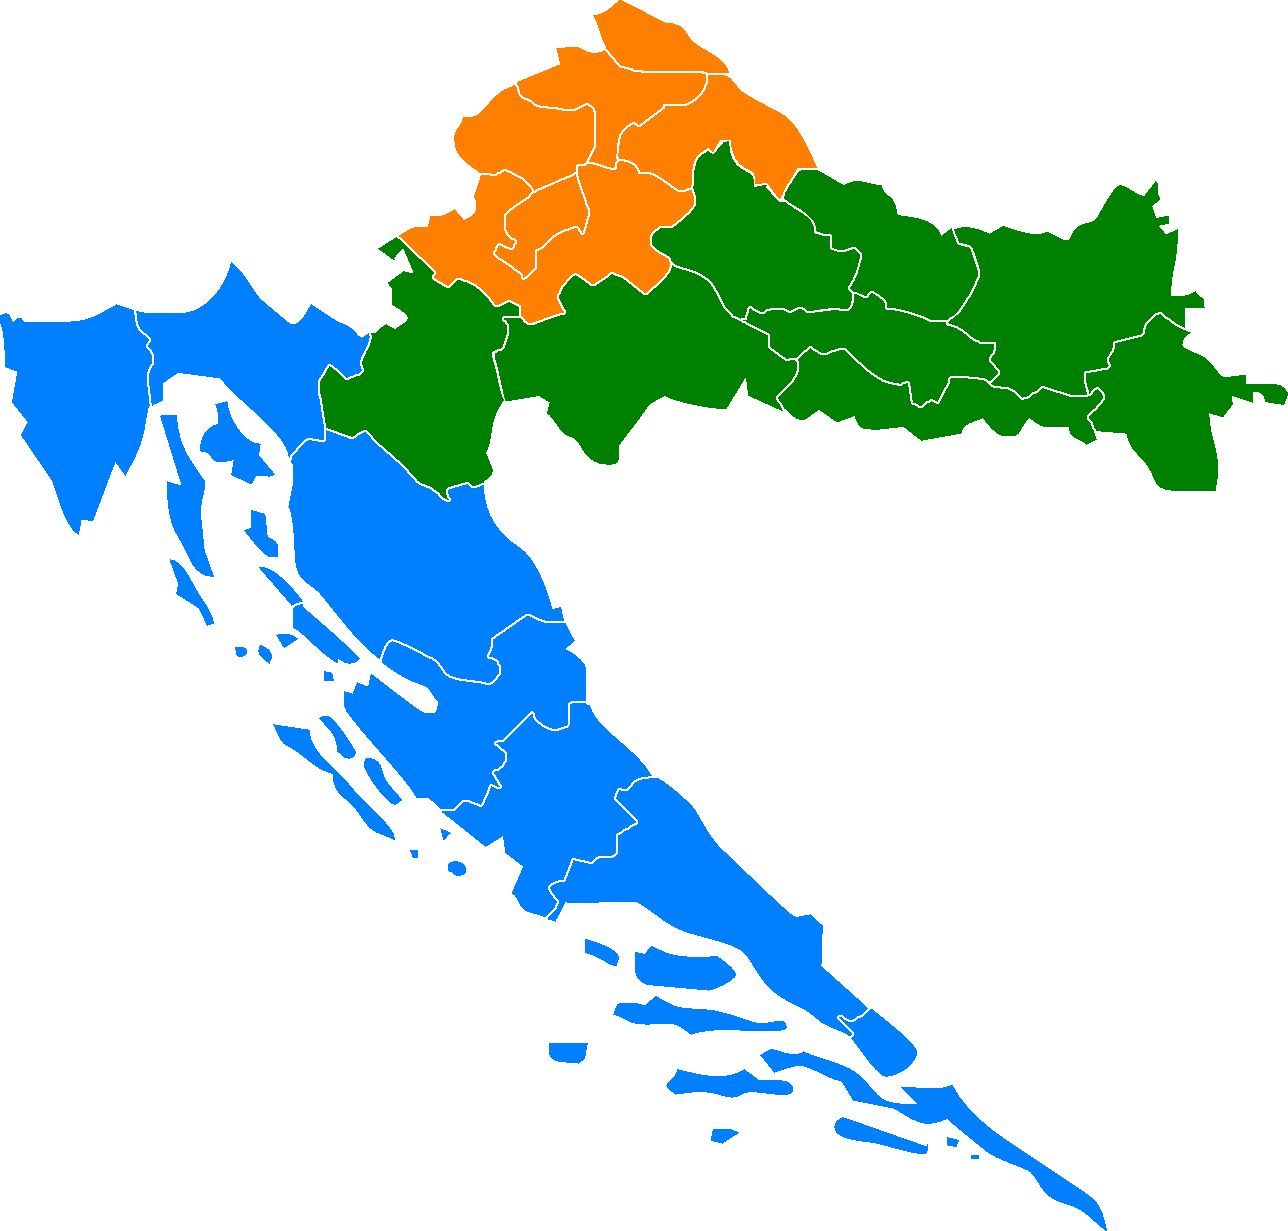 File:NUTS of Croatia.PNG